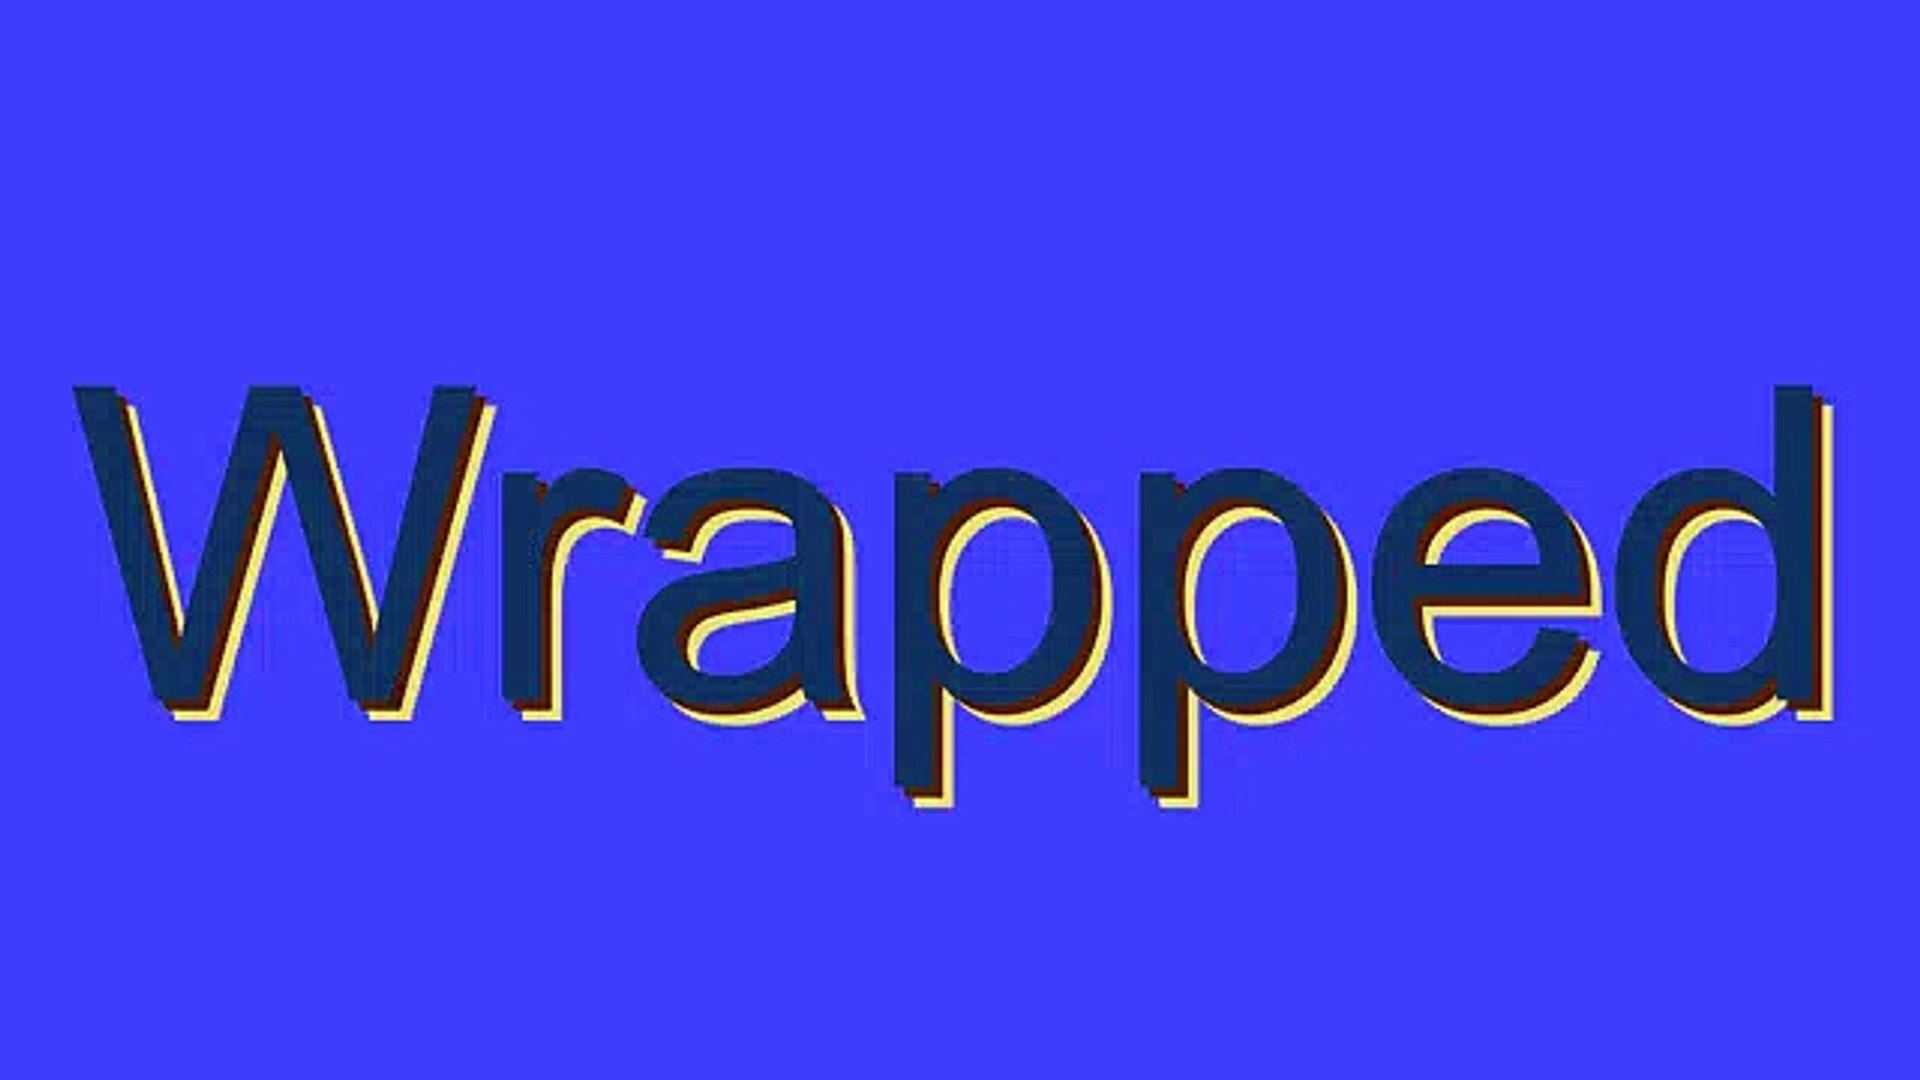 How to Pronounce Wrapped